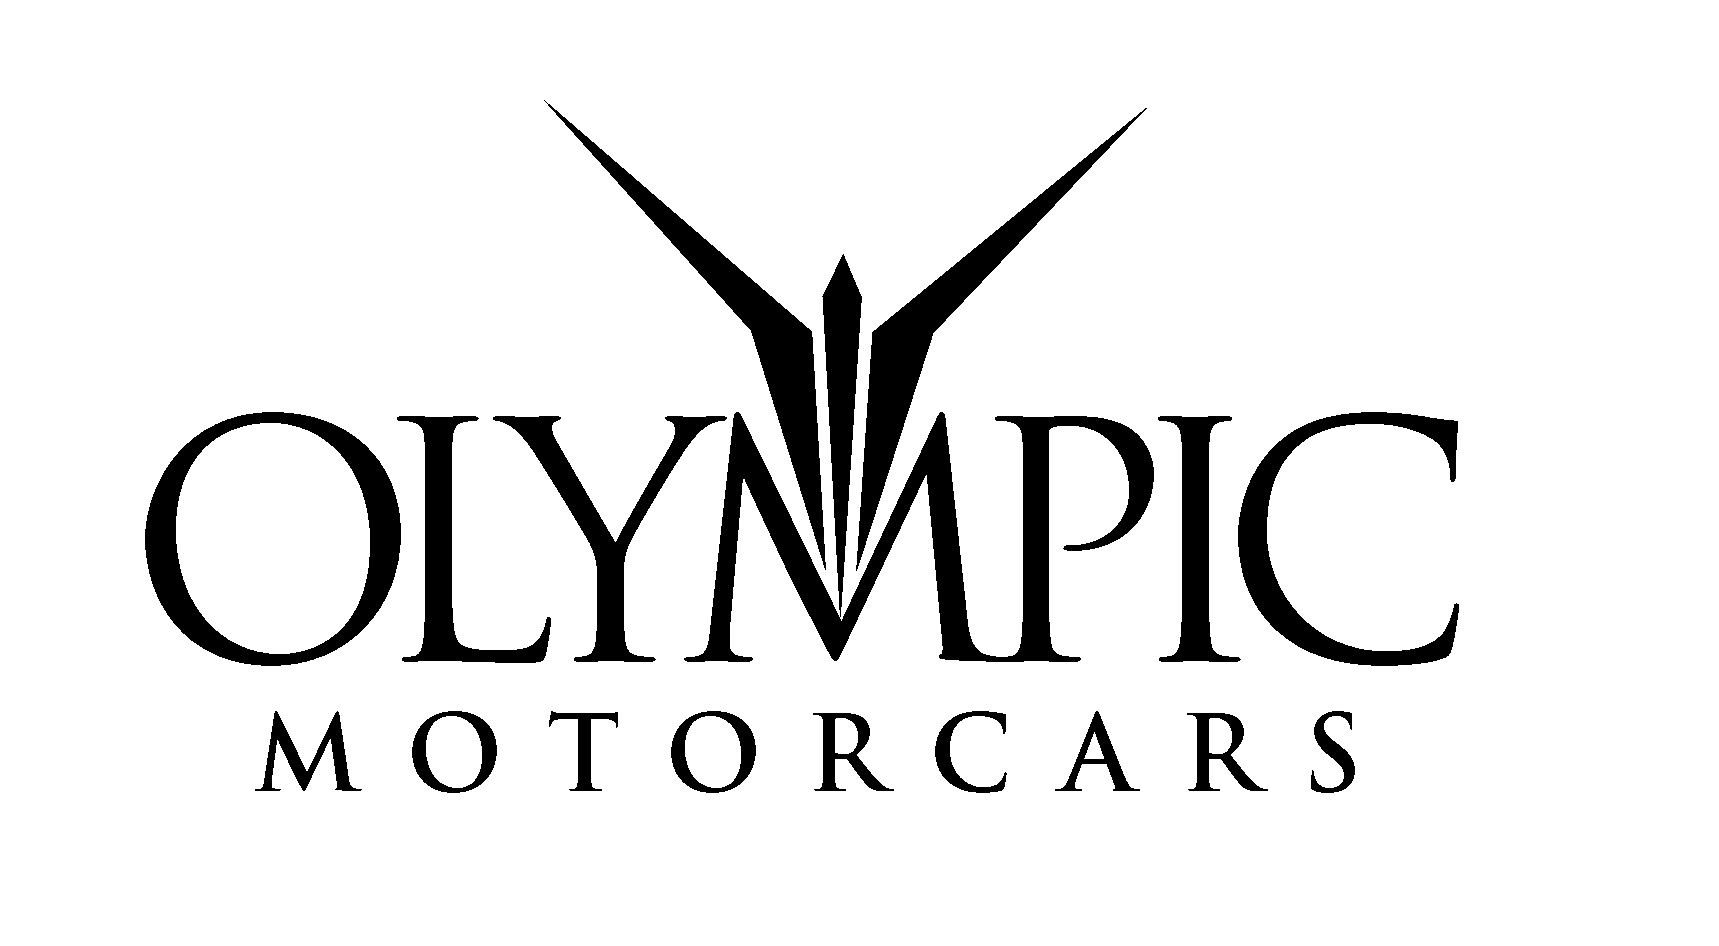 Help Olympic Motorcars with a new logo